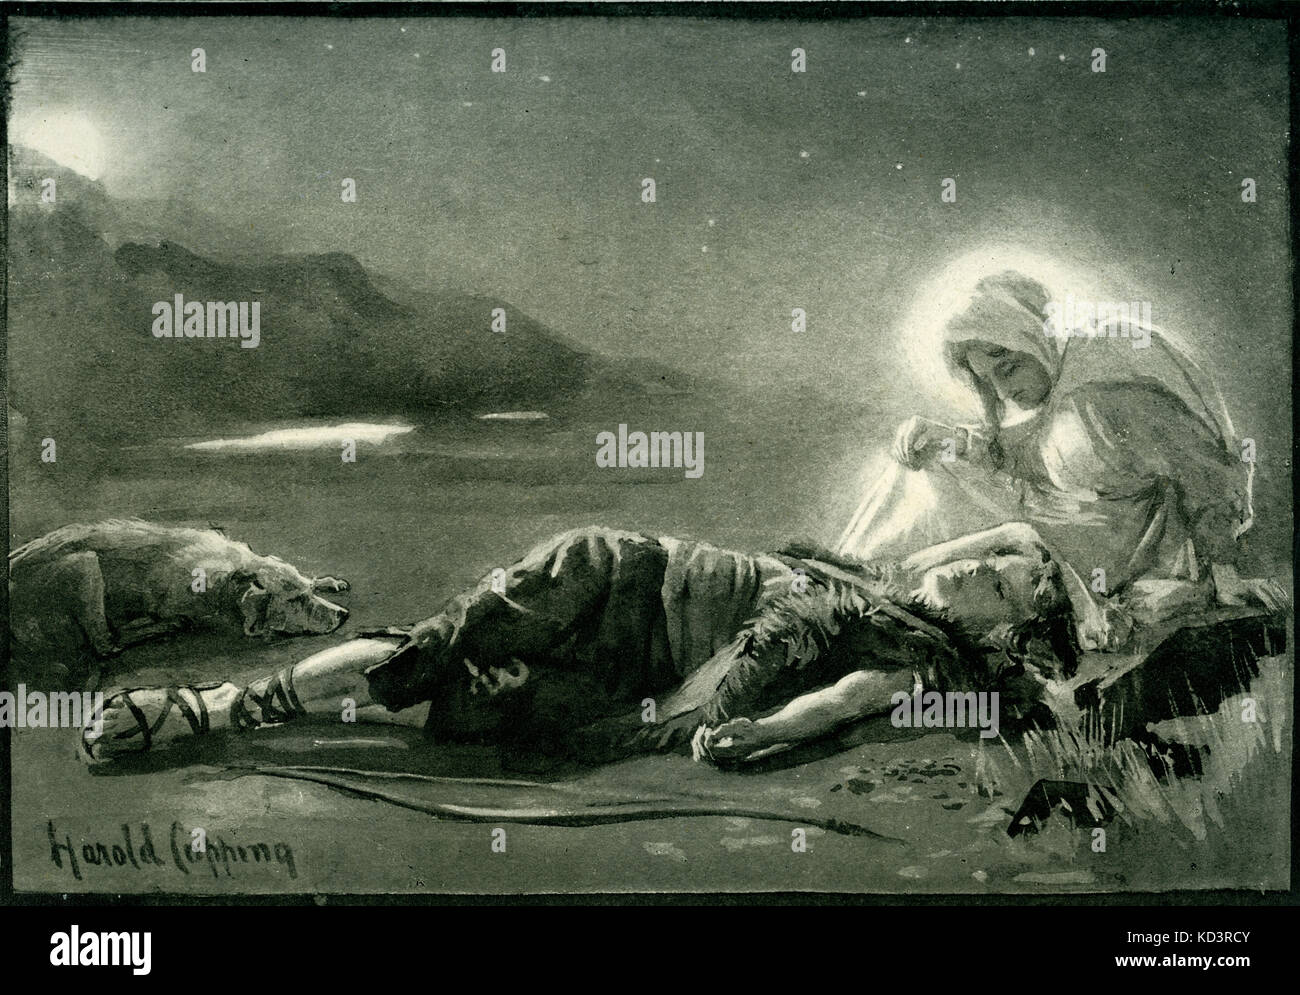 Basques - The Virgin of the Five Towns. Caption reads :' The vision approached nearer and nearer, and came and sat by the side of the sleeping huntsman and gazed upon him for a long time in silence.'  Photogravure illustration by Harold Copping. Stock Photo